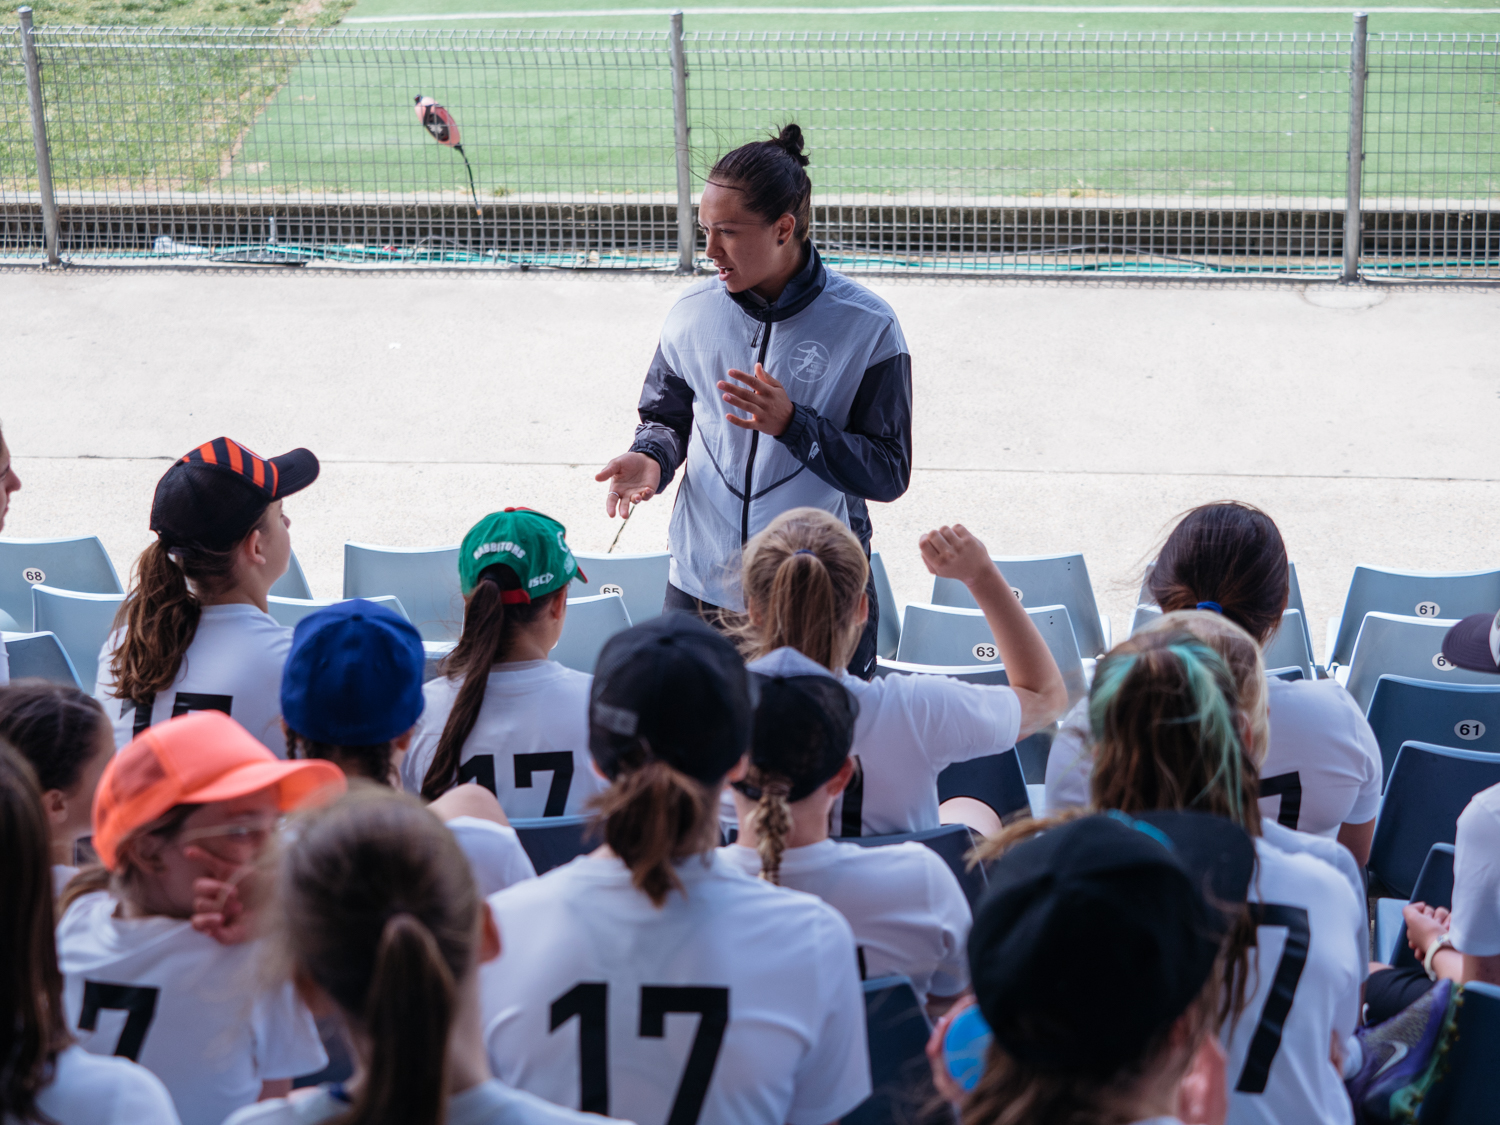 Q&A's with Kyah at the conclusion of the clinic